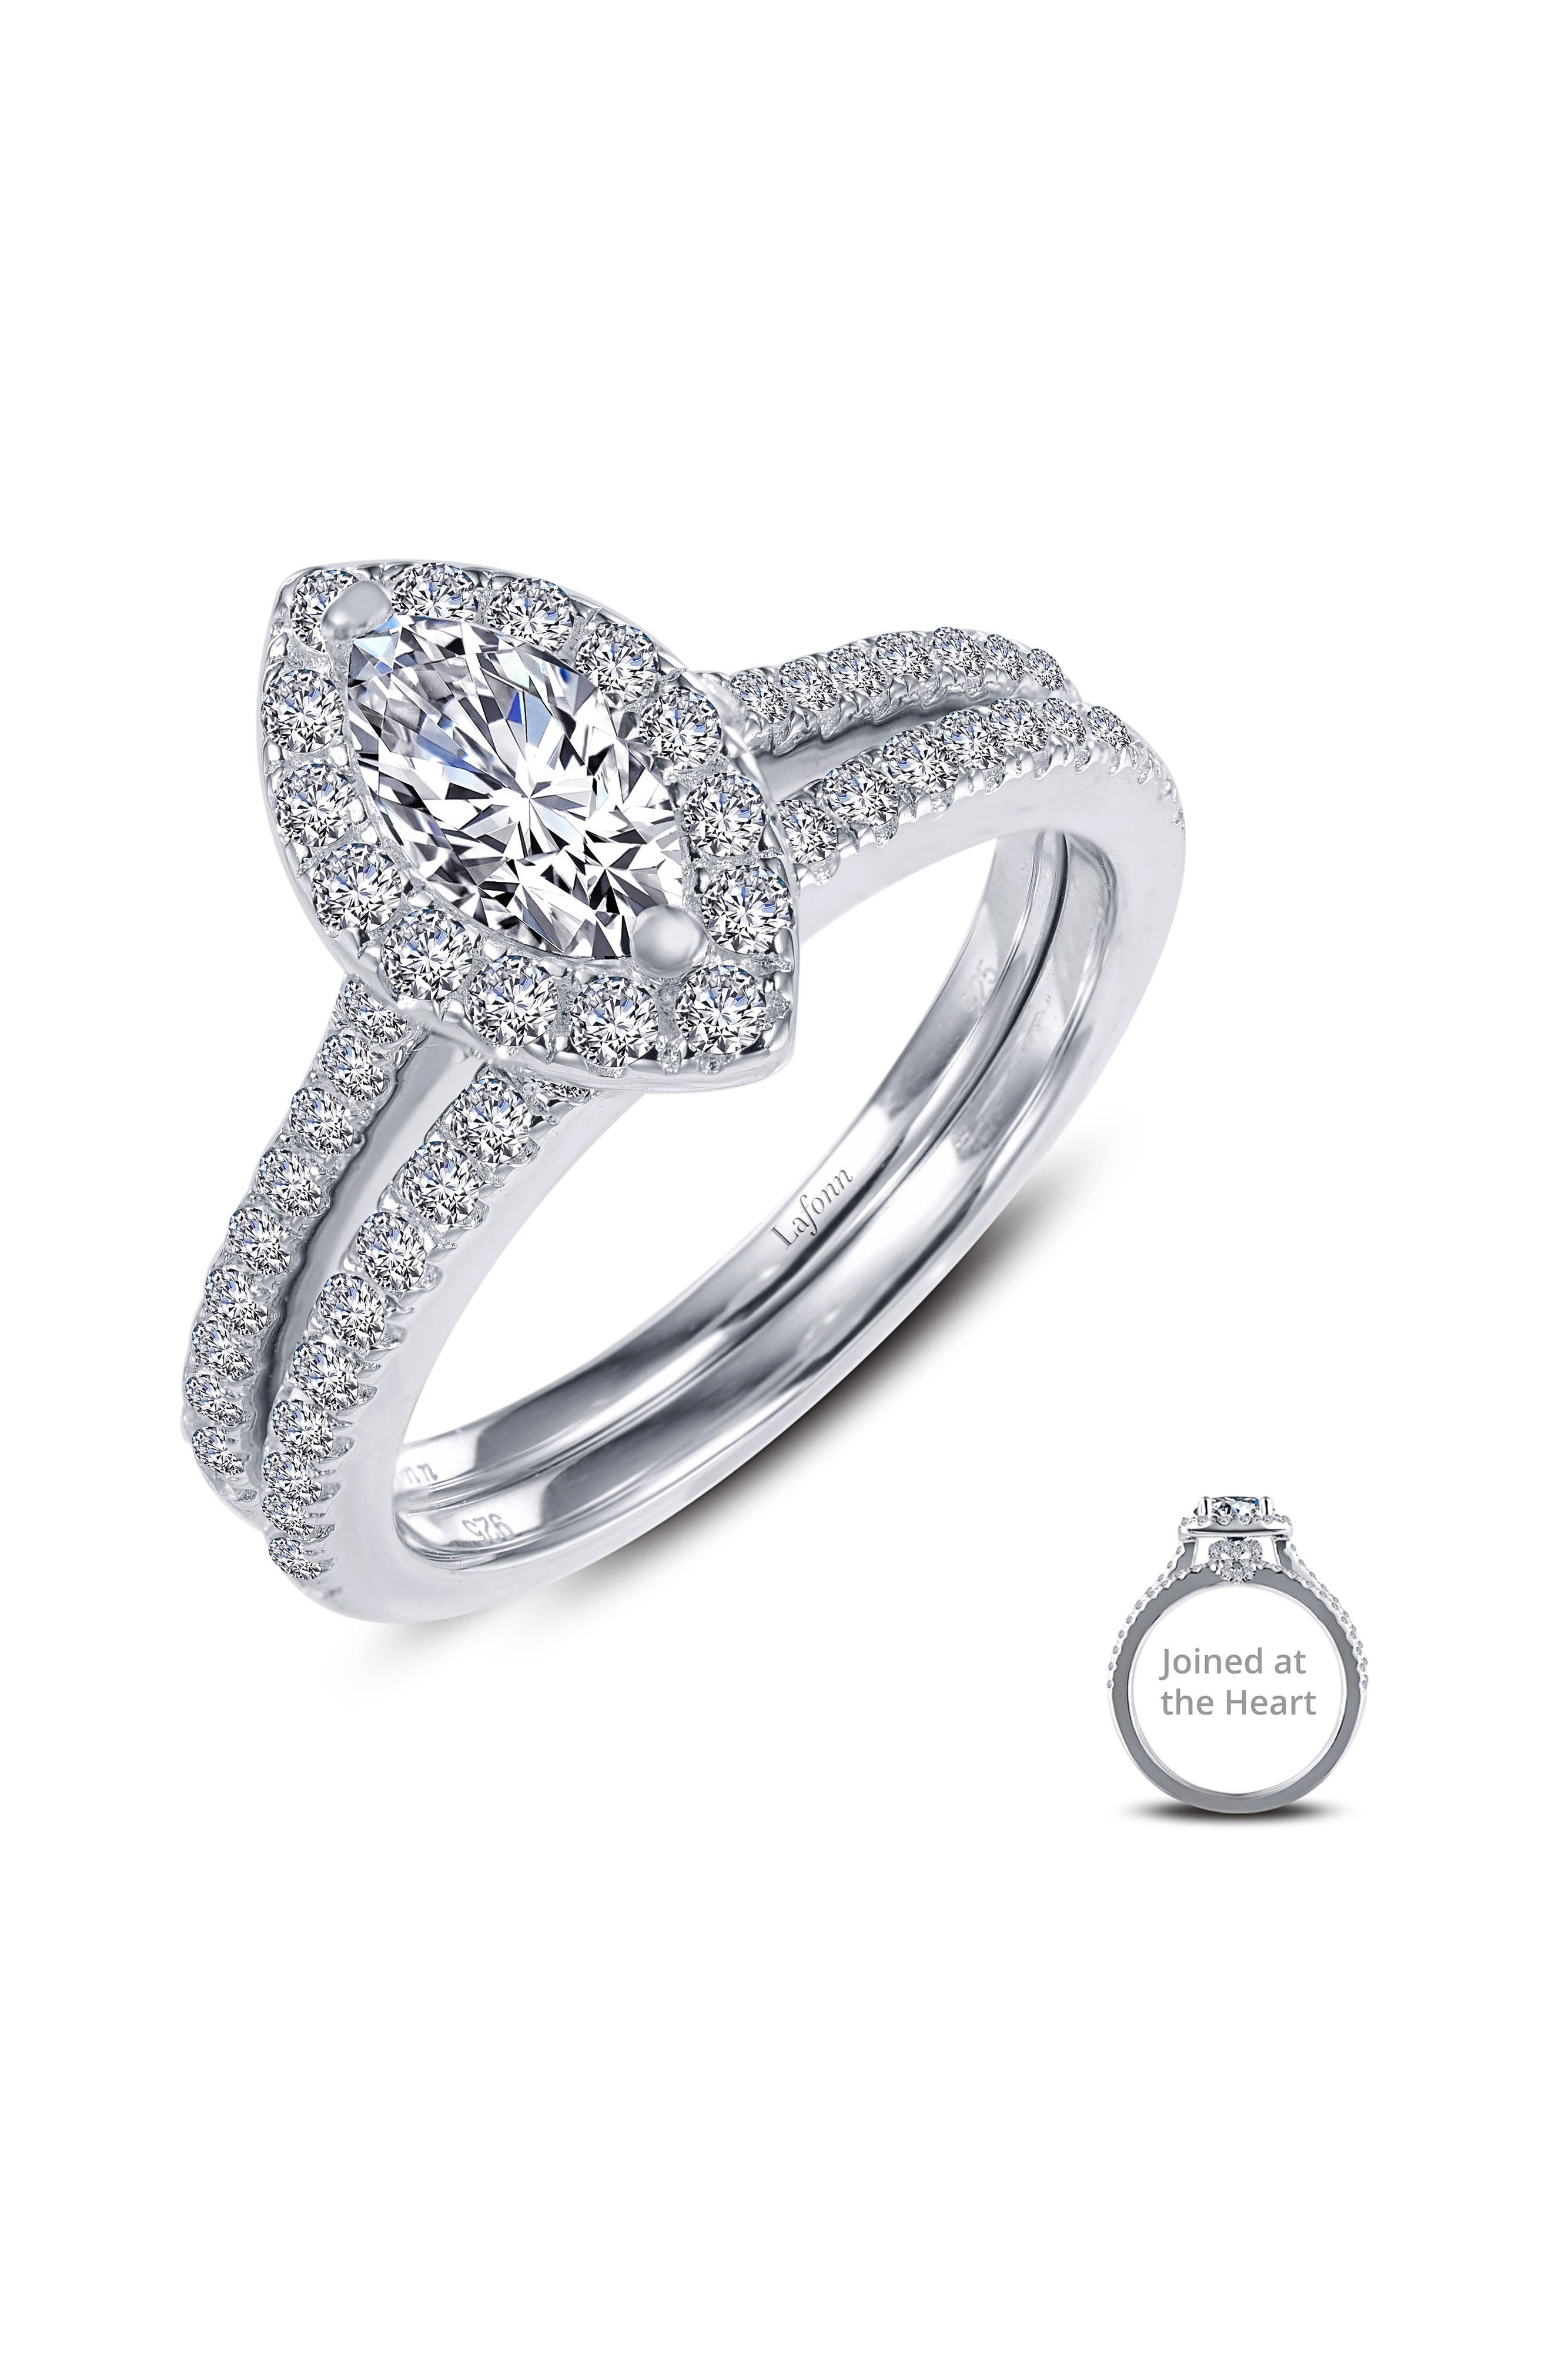 A timeless set combining engagement ring and wedding band forms a dazzling heart, signifying the beauty of your union. The engagement ring boasts a sparkly marquise-cut stone and the wedding band is styled with more of Lafonn\\\'s signature Lassaire simulated diamonds for truly stunning allure. Style Name: Lafonn Joined At The Heart Marquise Halo Ring. Style Number: 5627079. Available in stores.